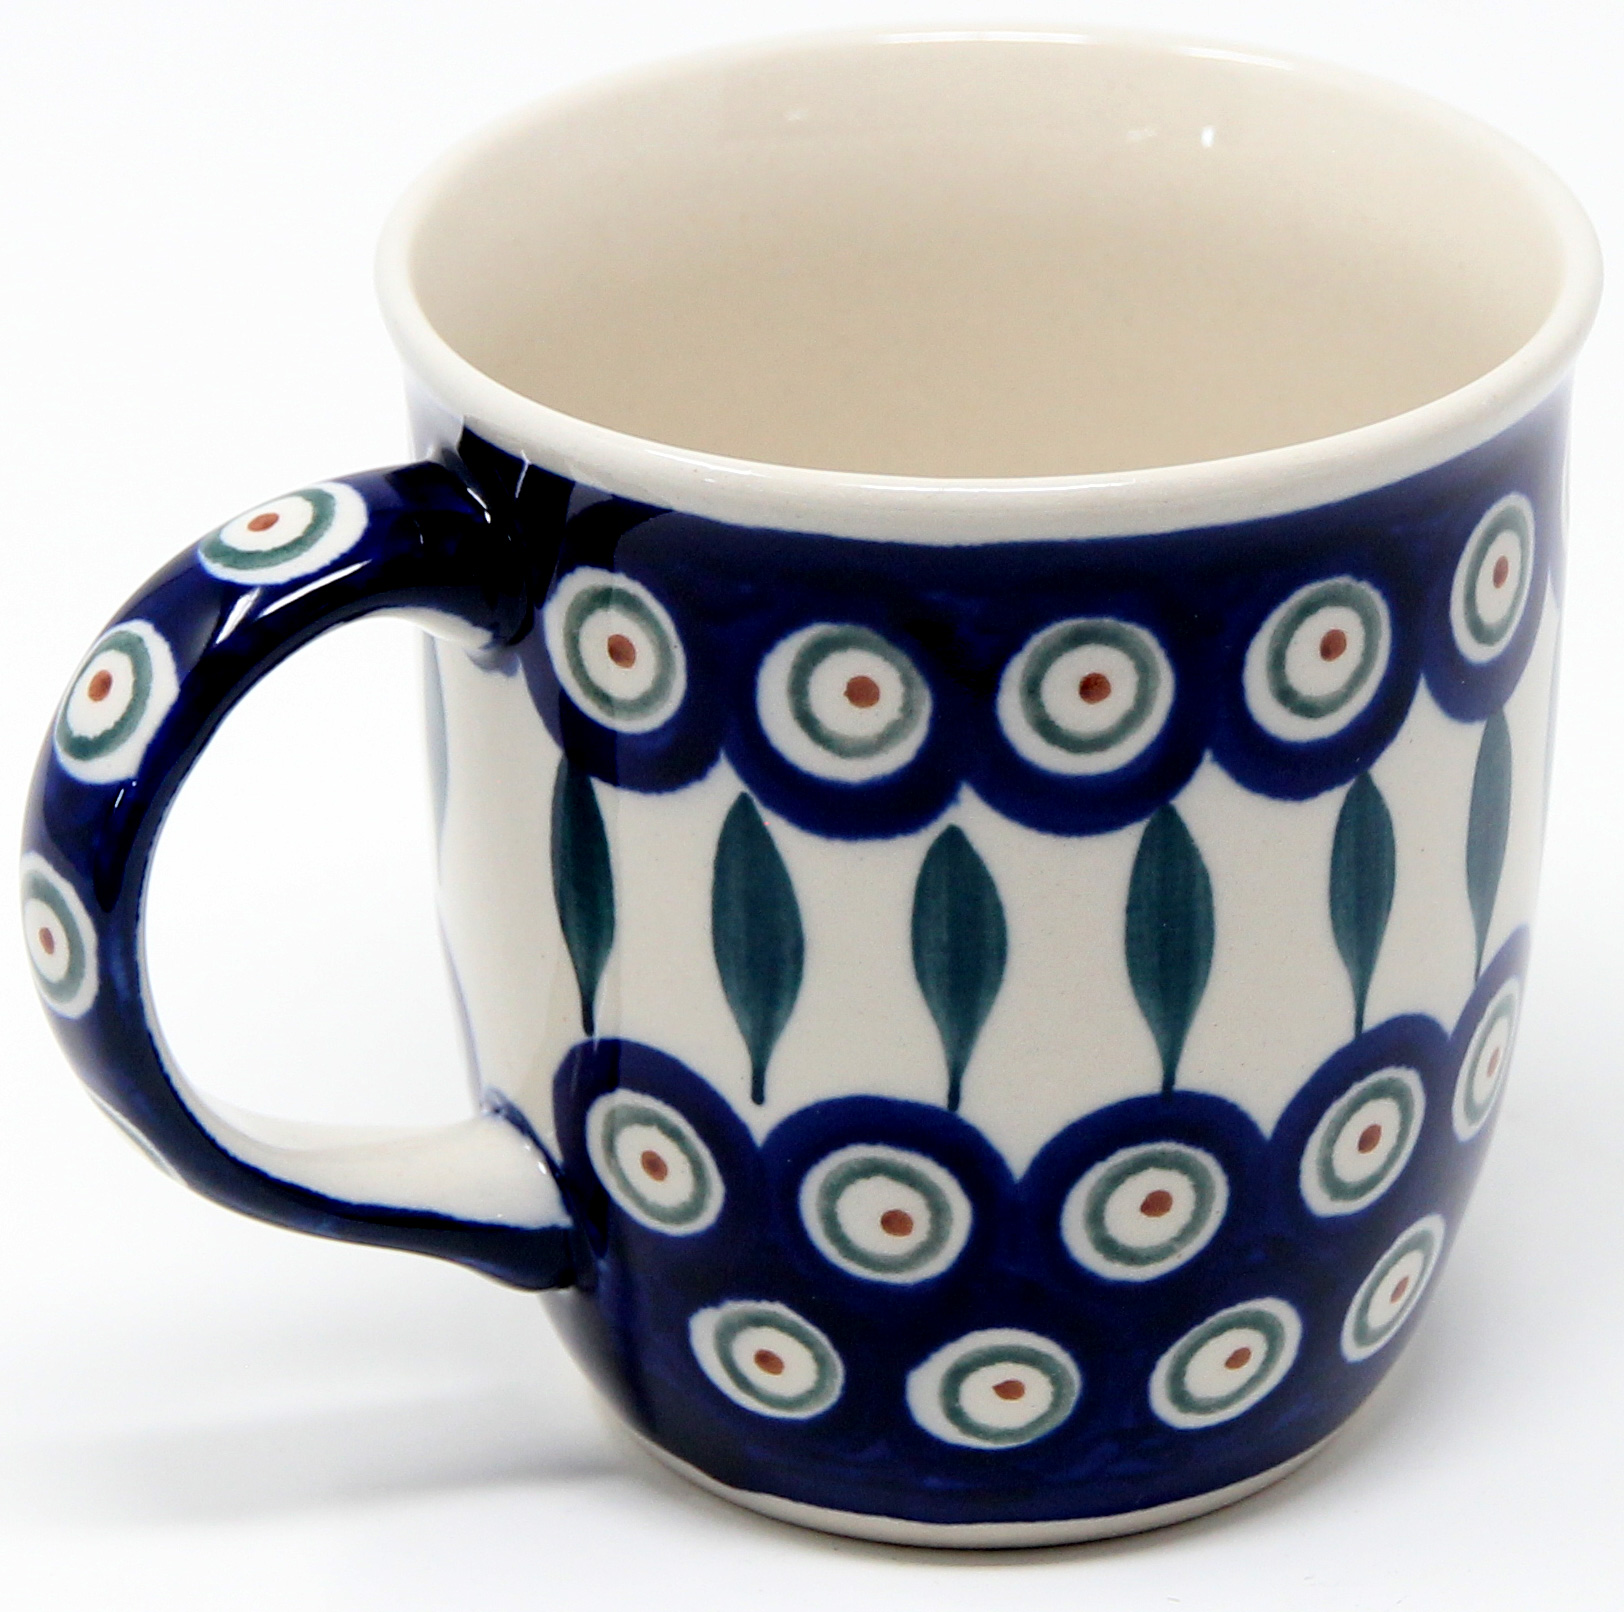 Polish Pottery Mug 12 Oz., Peacock Classic Design